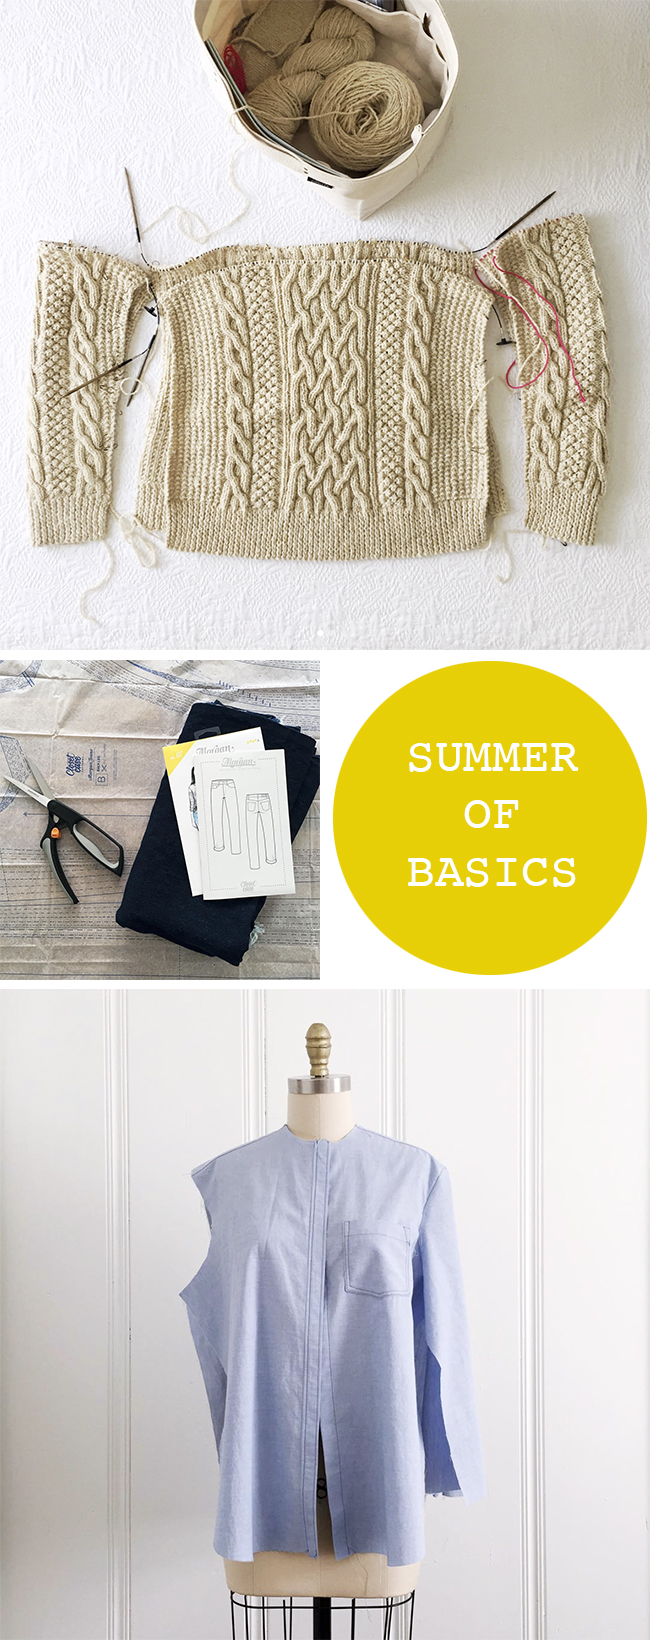 Get planning! Summer of Basics is coming!